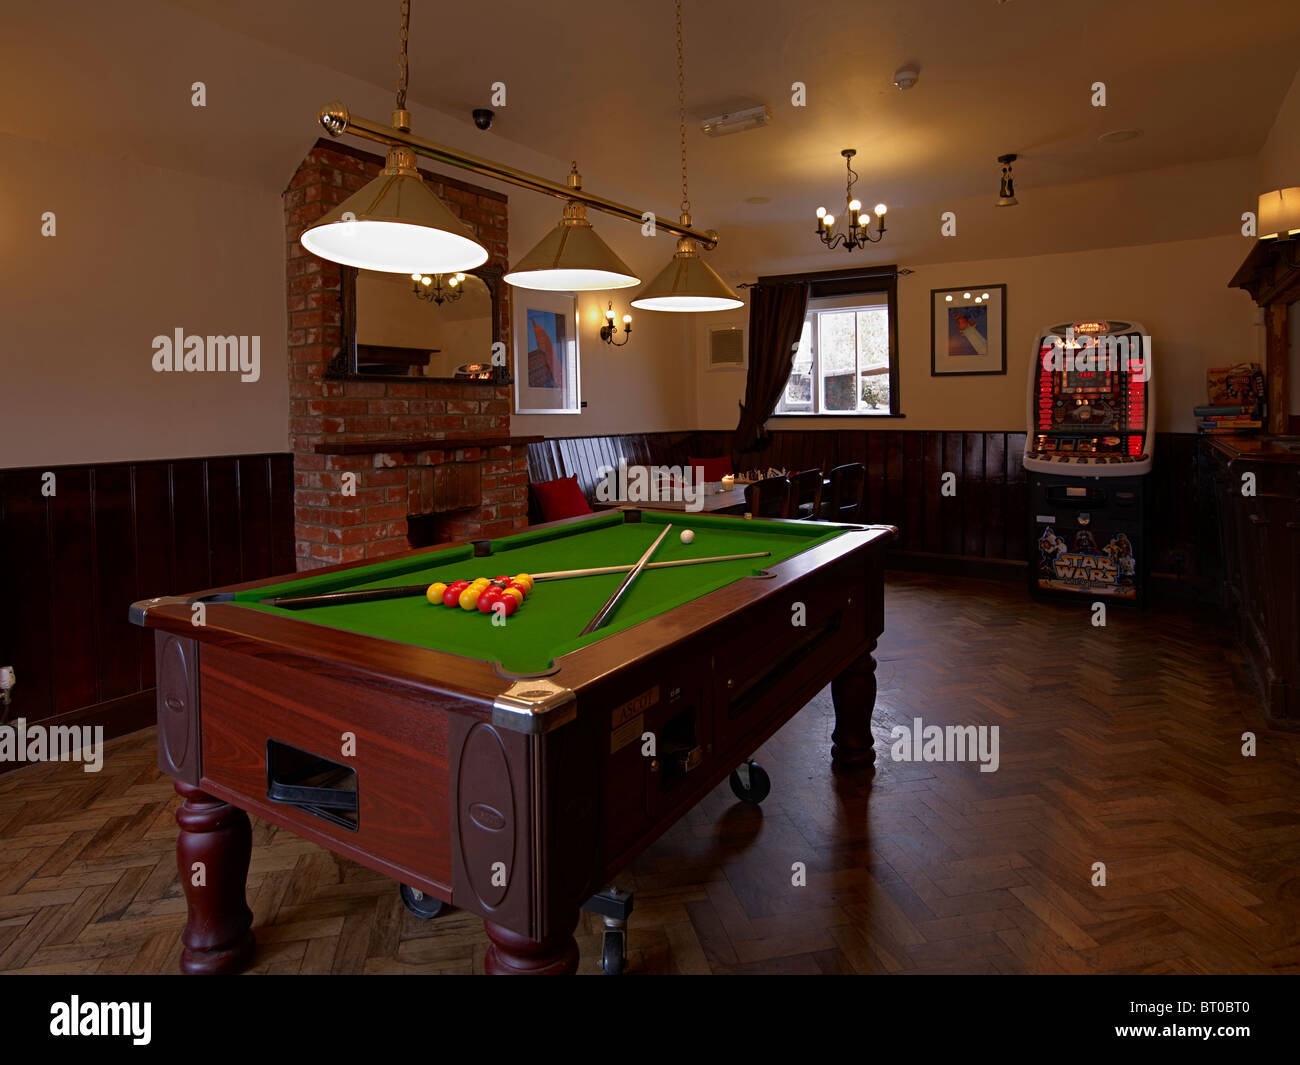 the pool table in the games room of an old english pub or